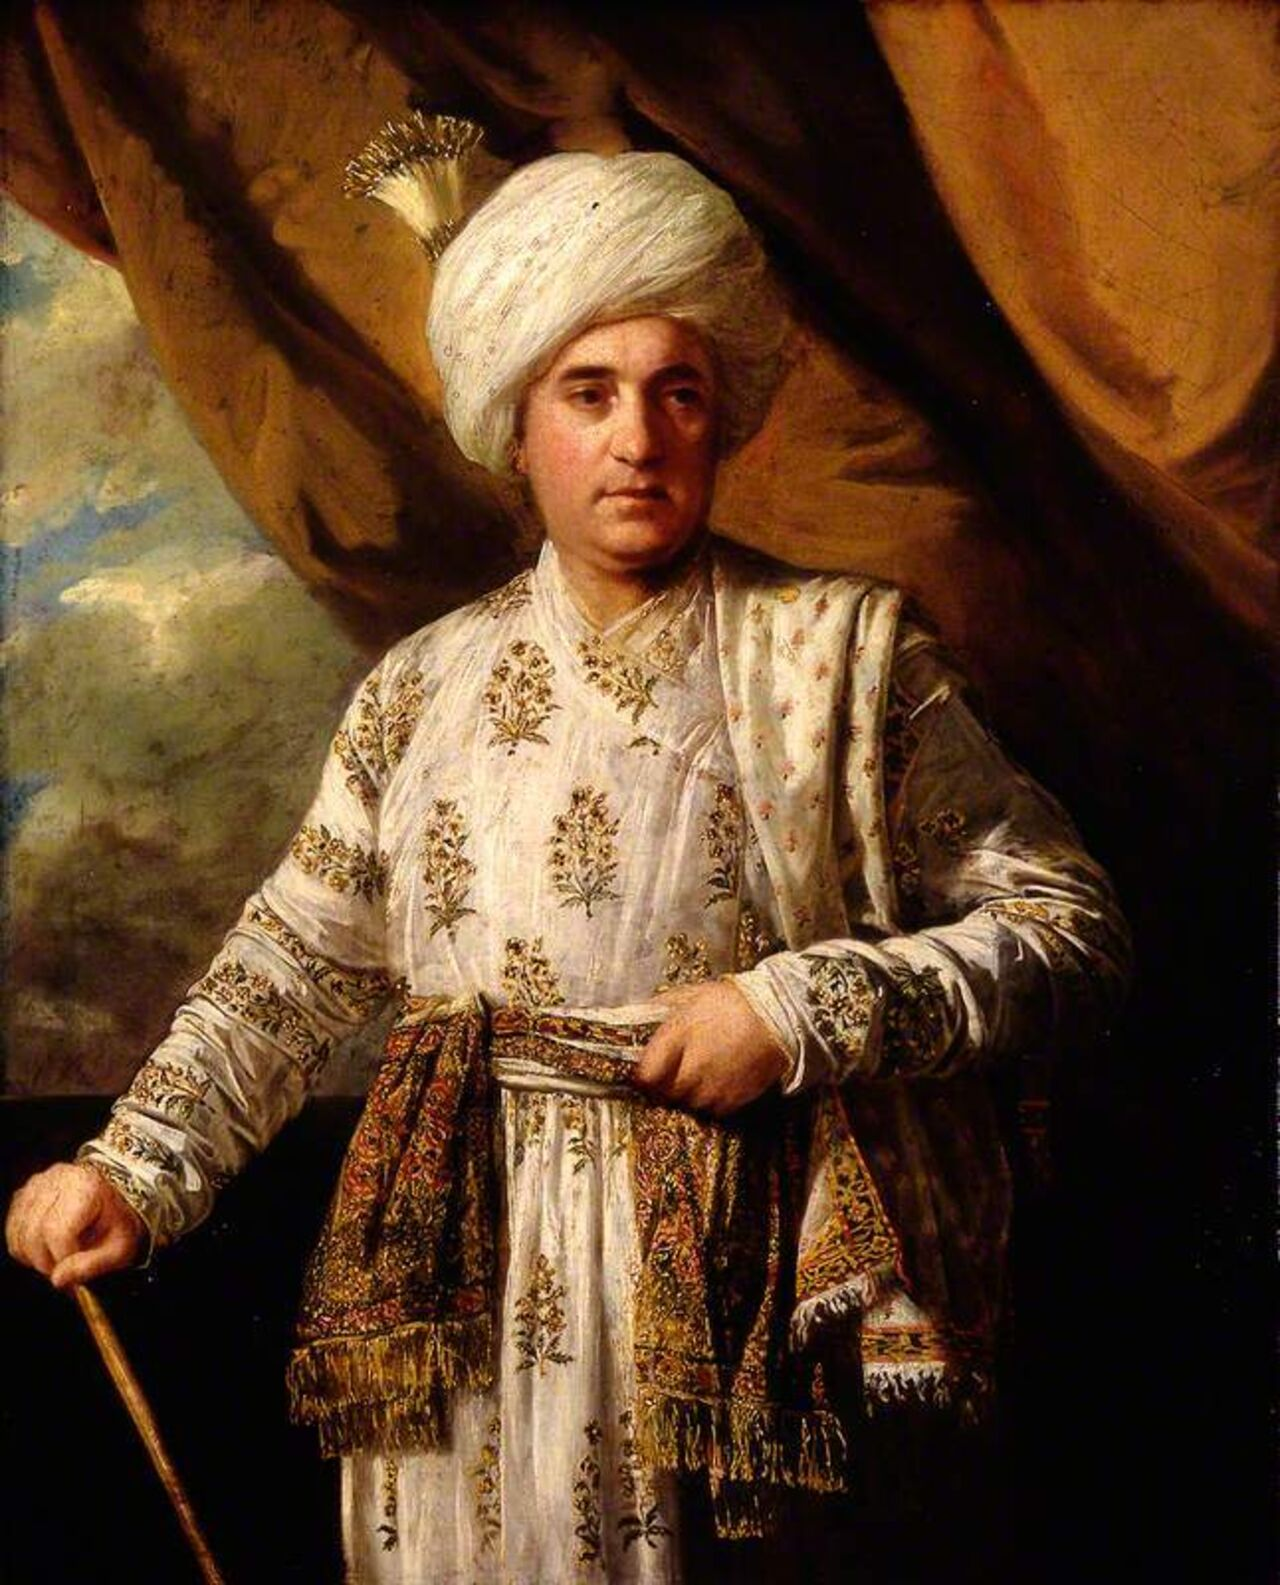 Painting of a man in Indian dress.